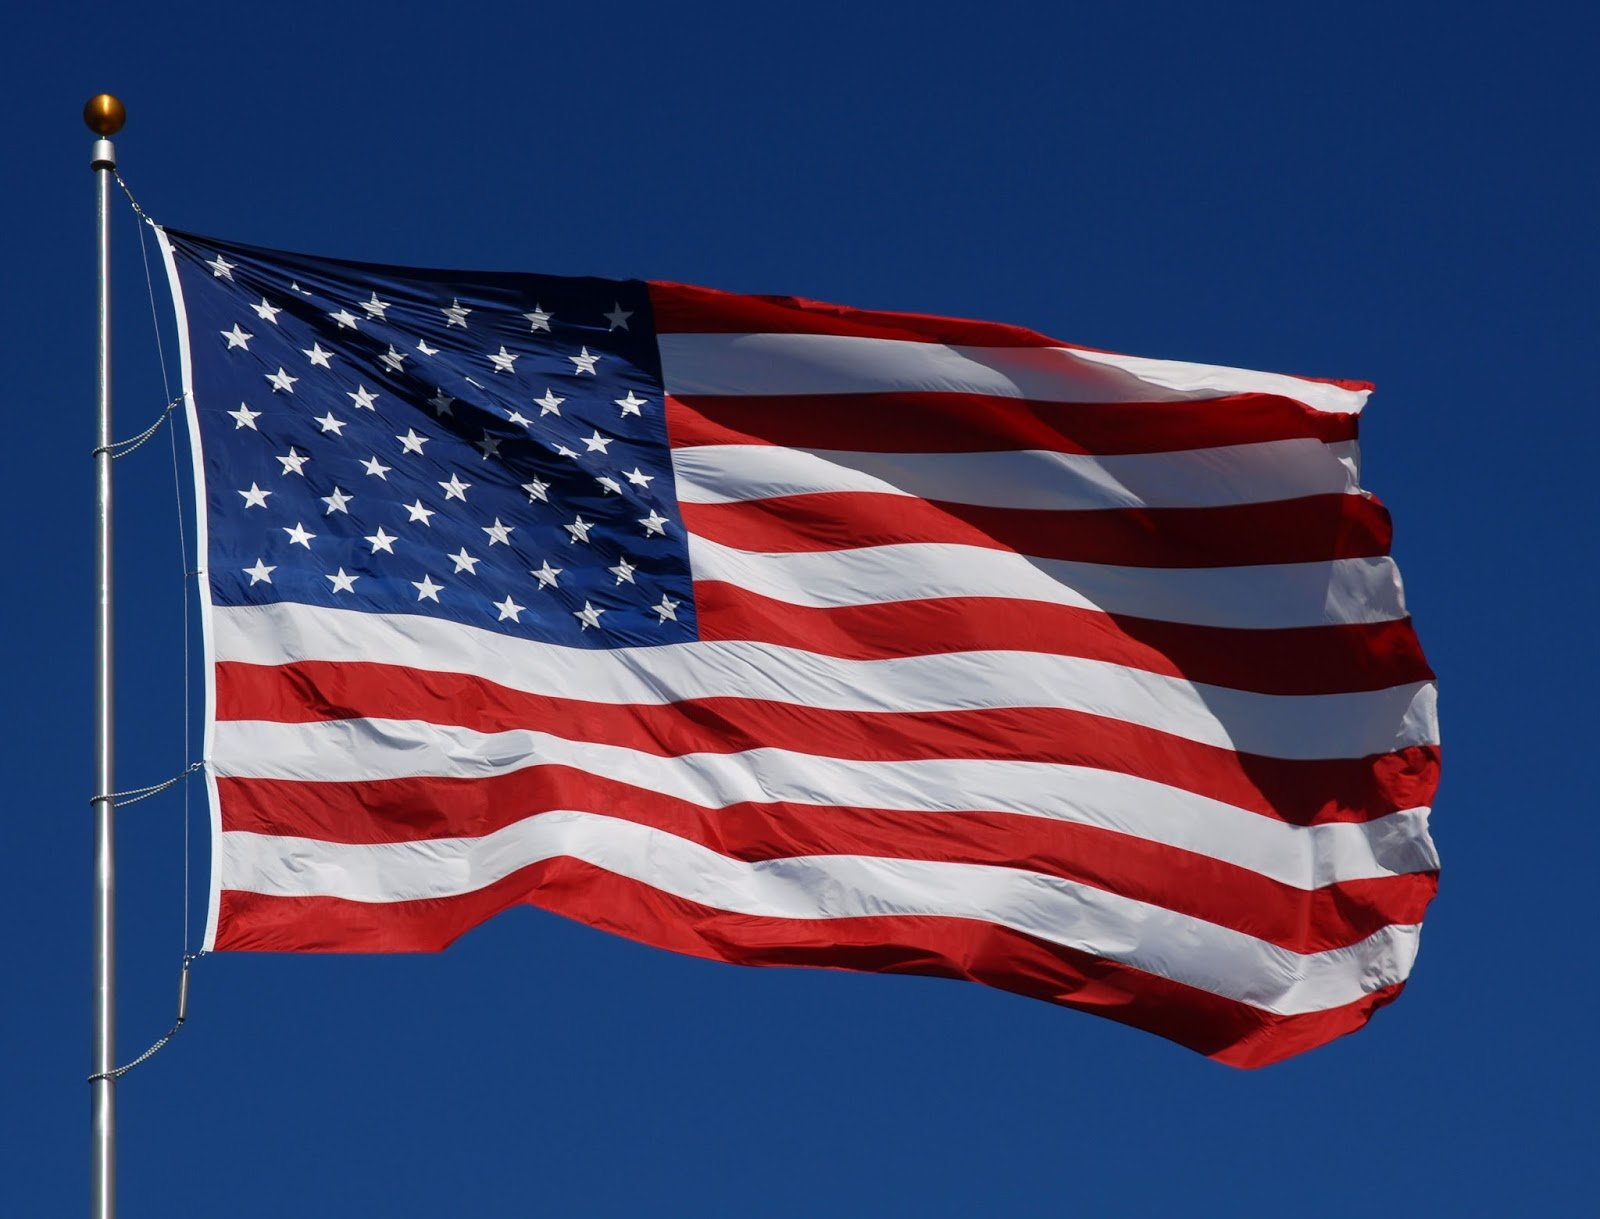 flag hd wallpaper old american flag with black background hd wallpaper 1600x1219